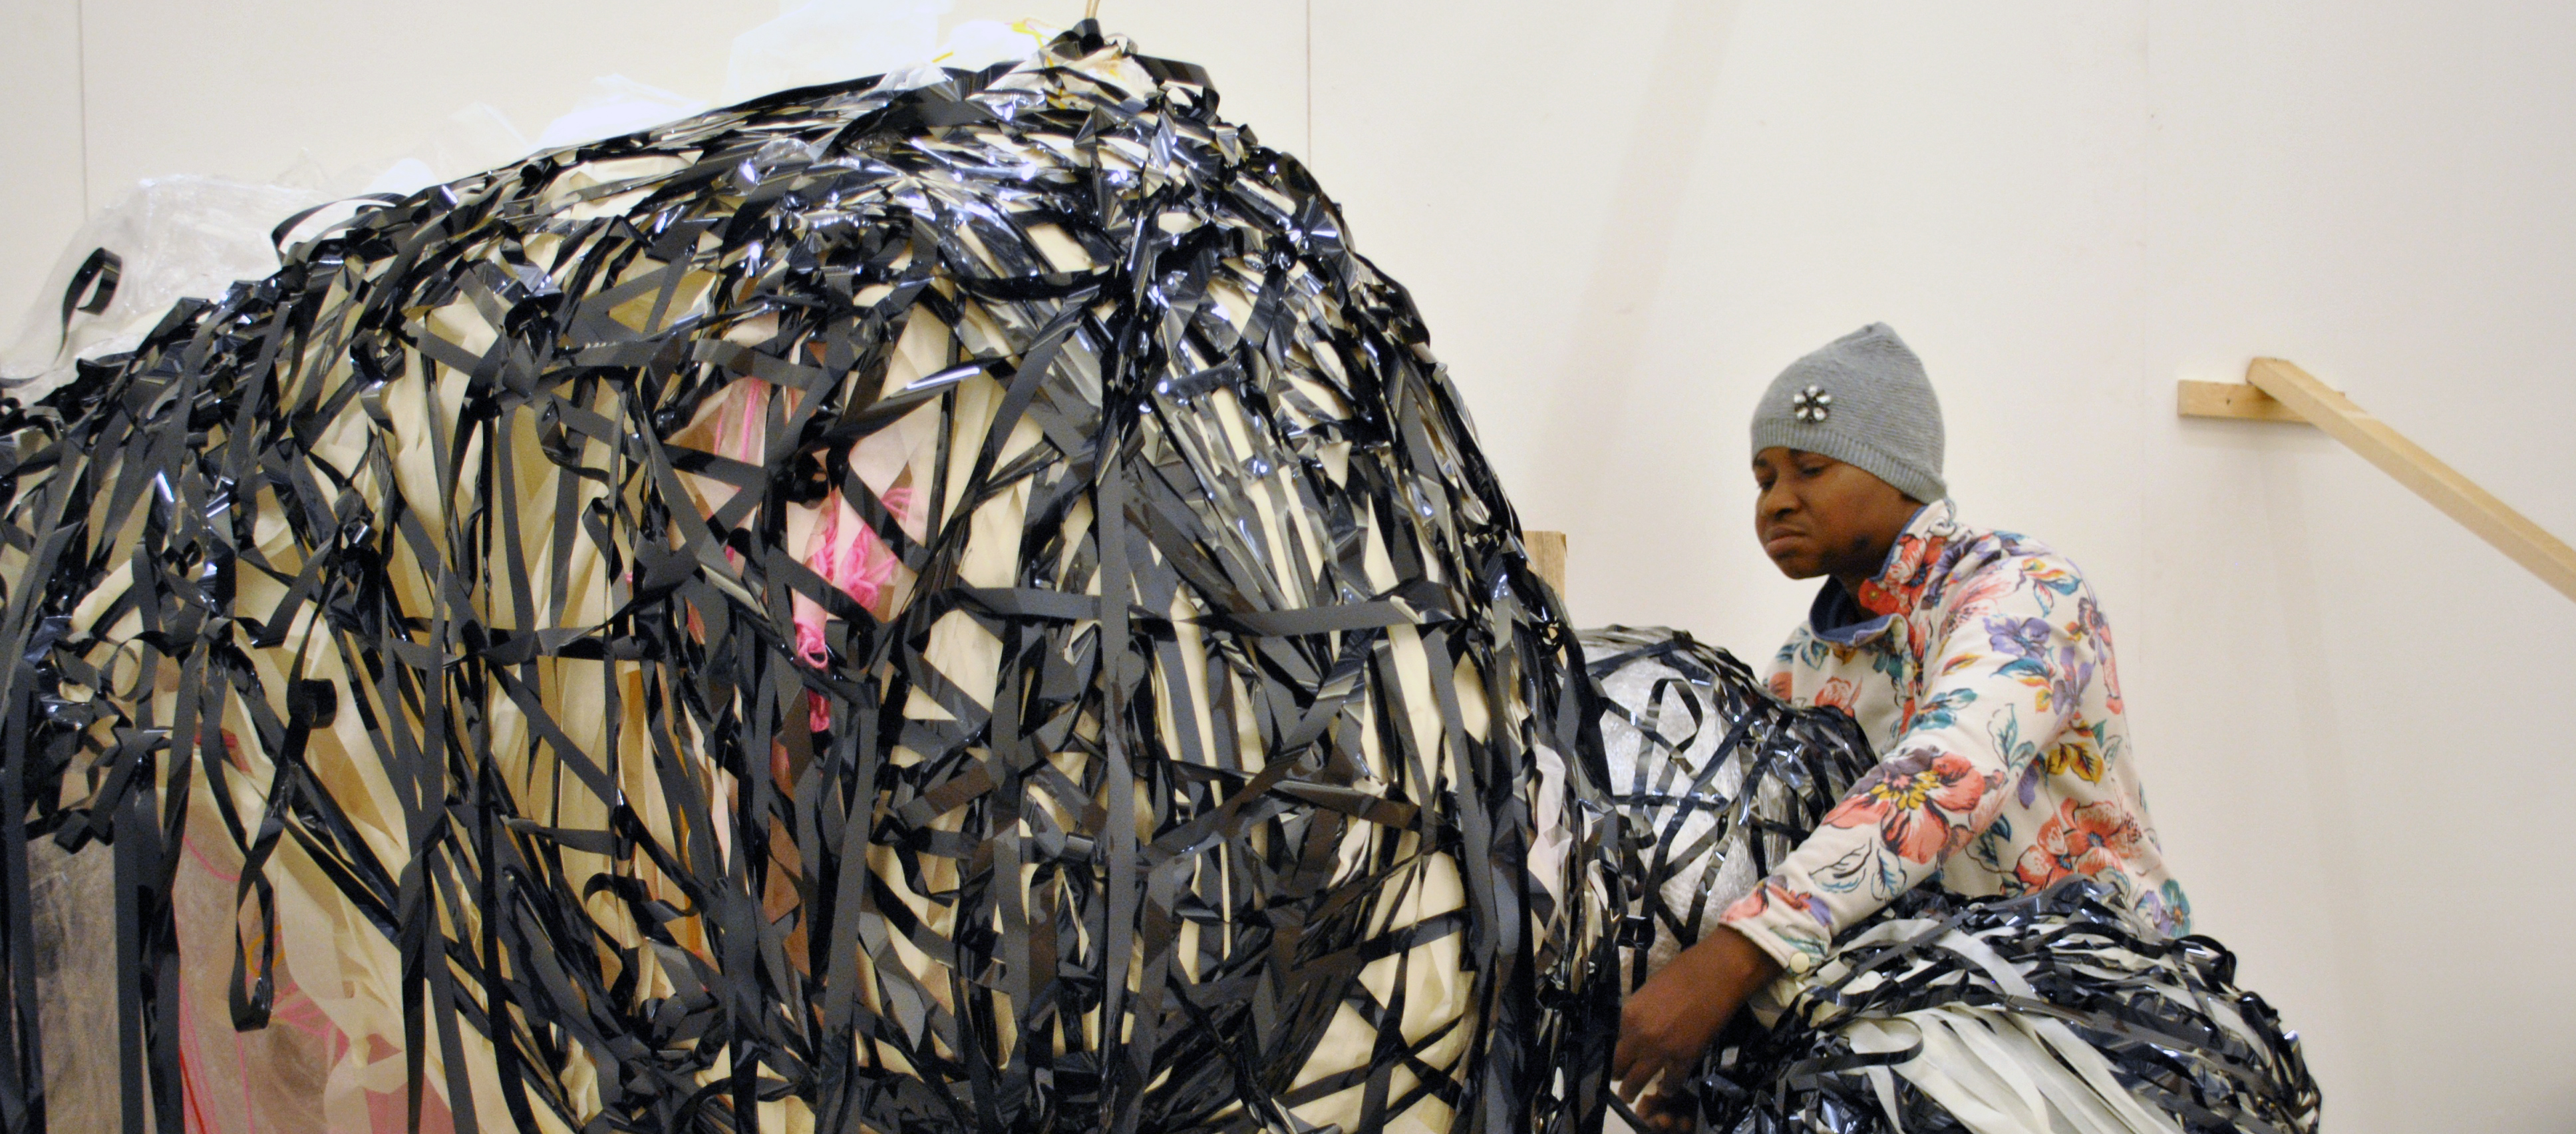 Nnena Kalu creating an installation at Theatre de Liege